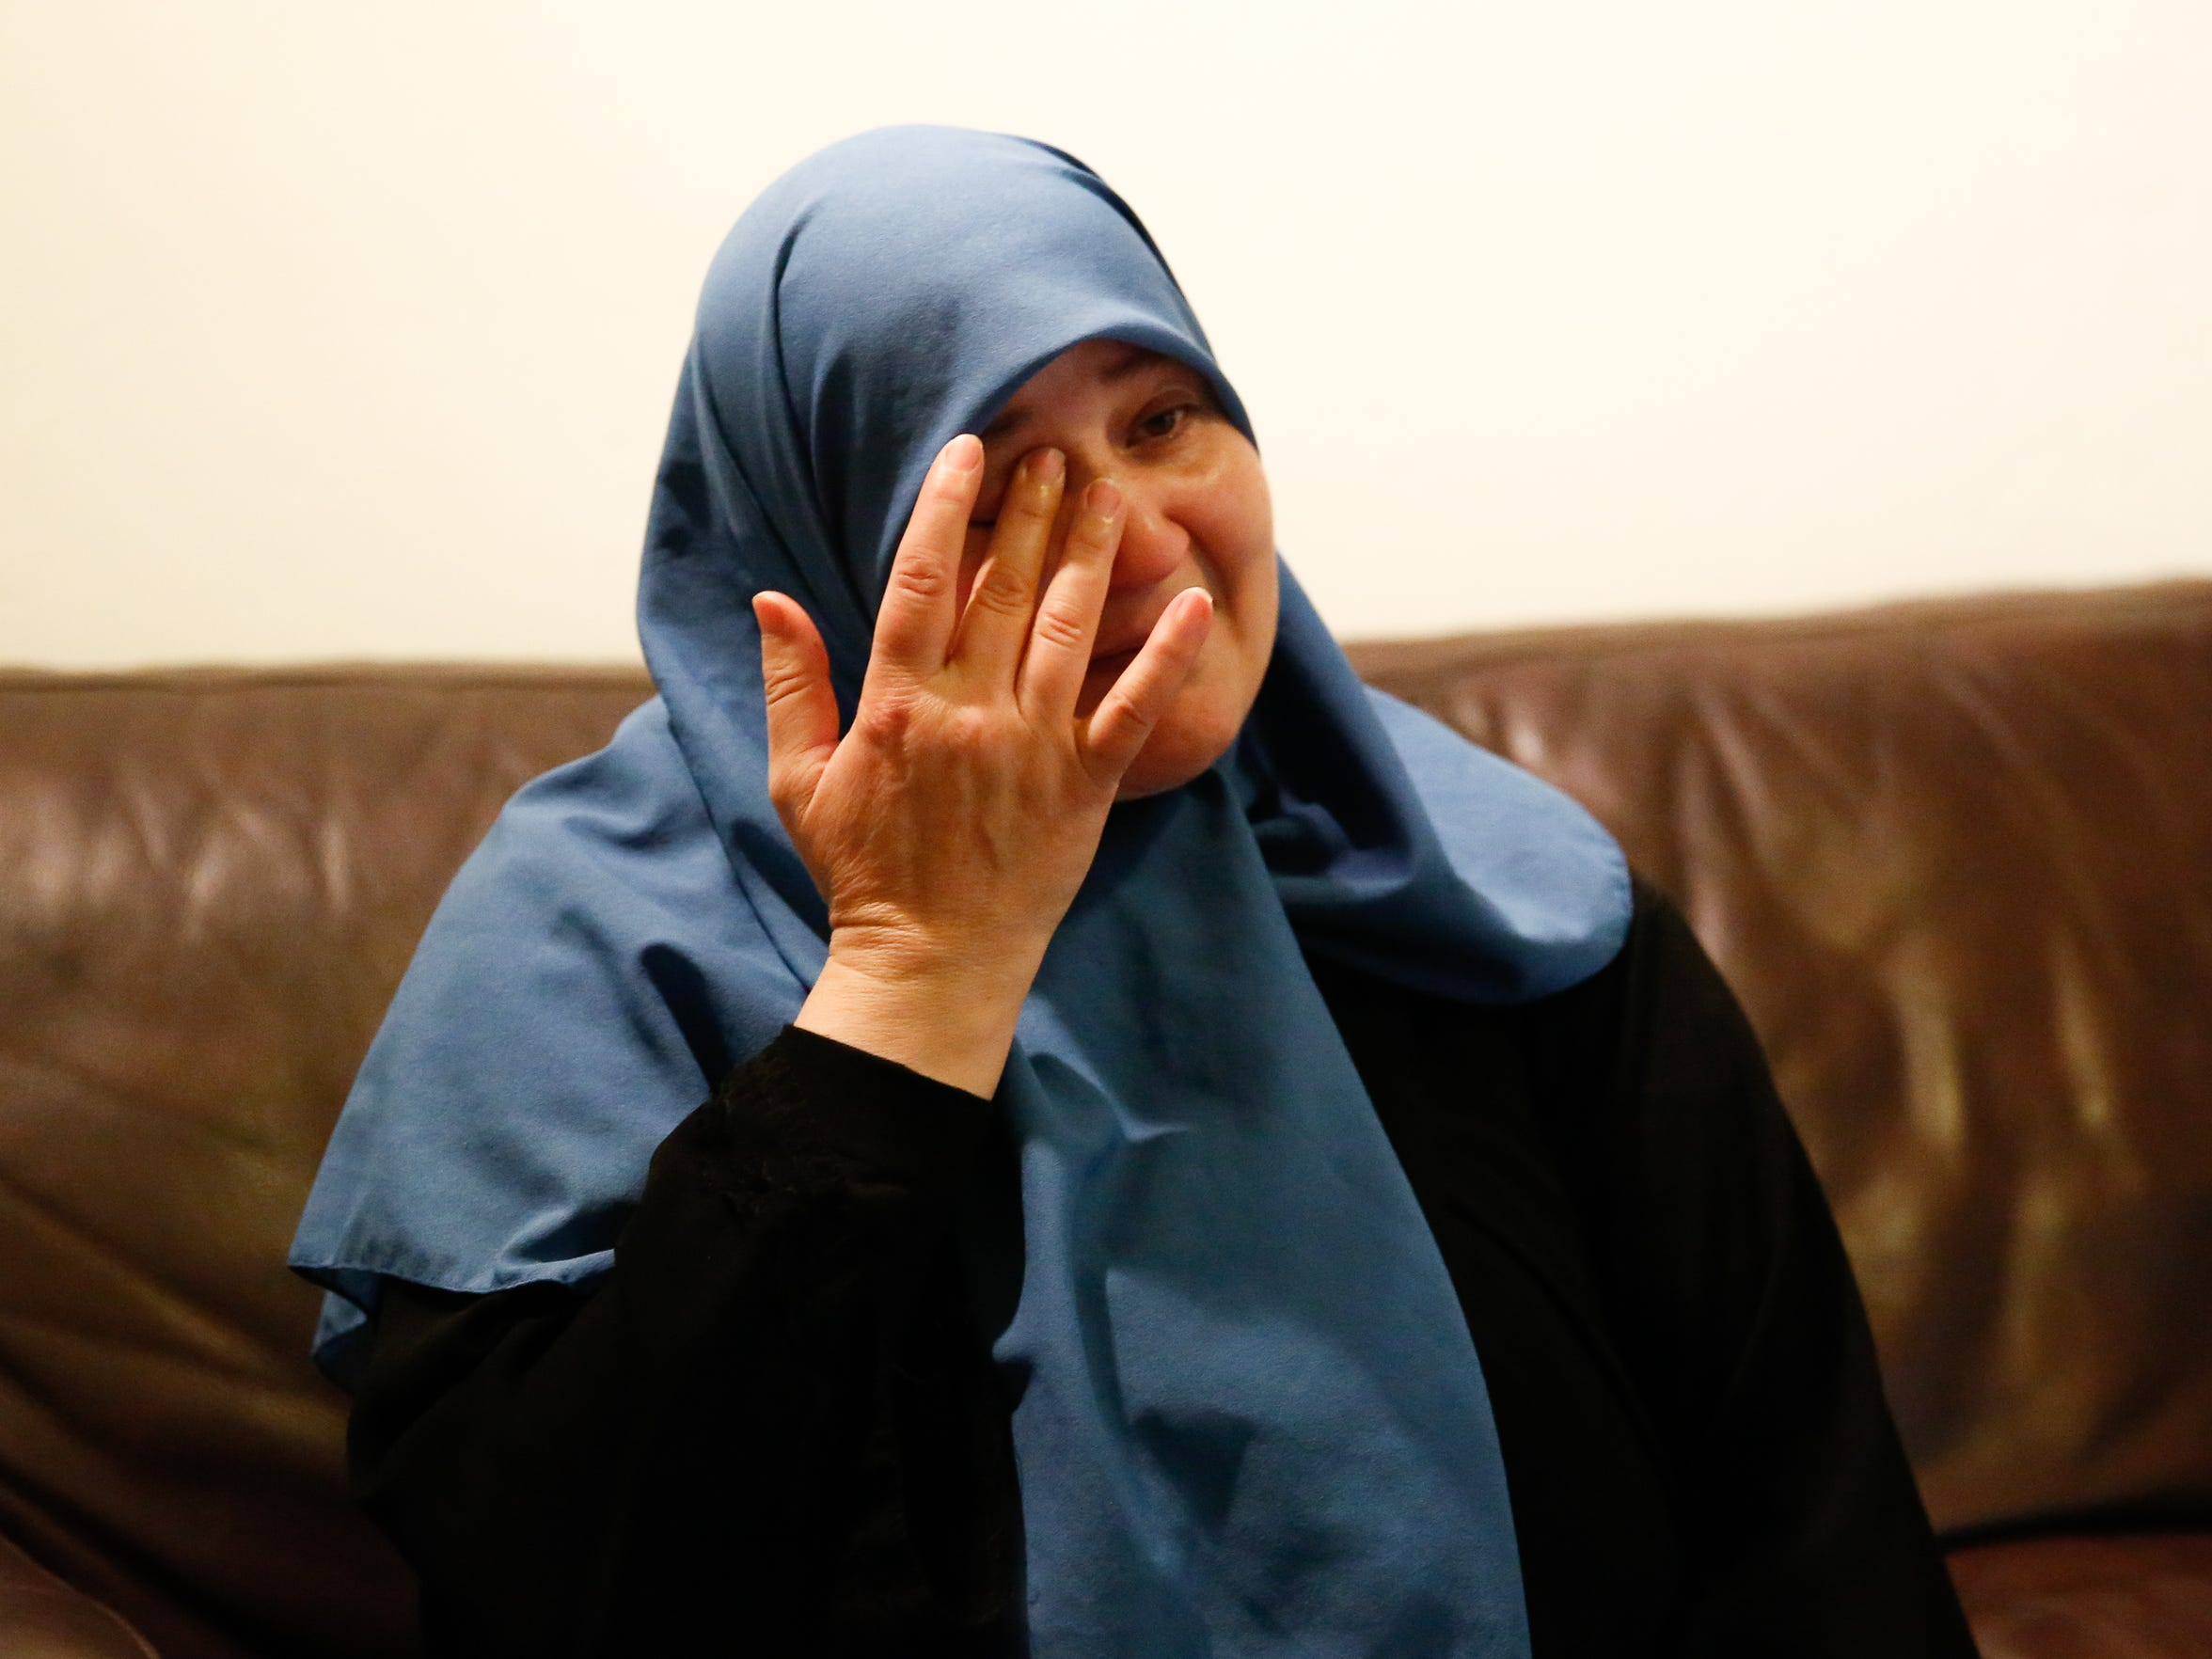 Osaima Alhalabi tears up while bringing up memories of her family who relocated to Jordan during the ongoing Syrian Civil War.